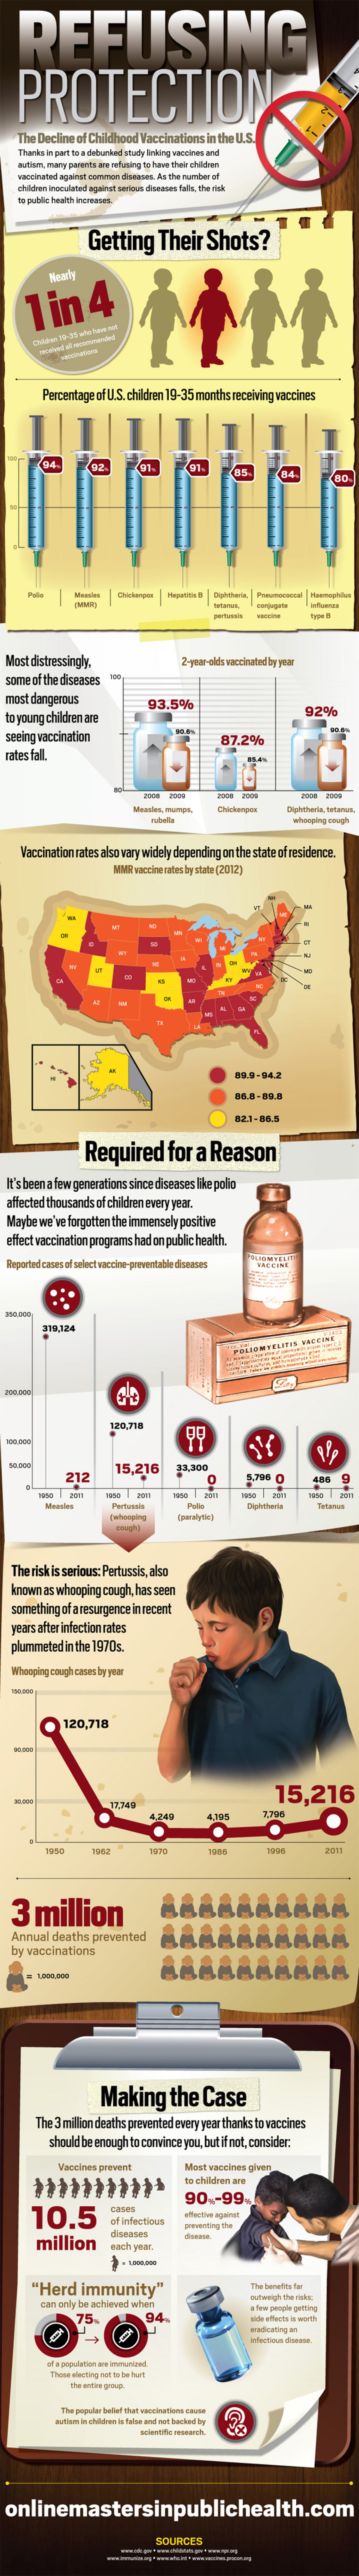 Refusing Protection: The Decline of Childhood Vaccination in the U.S. Infographic